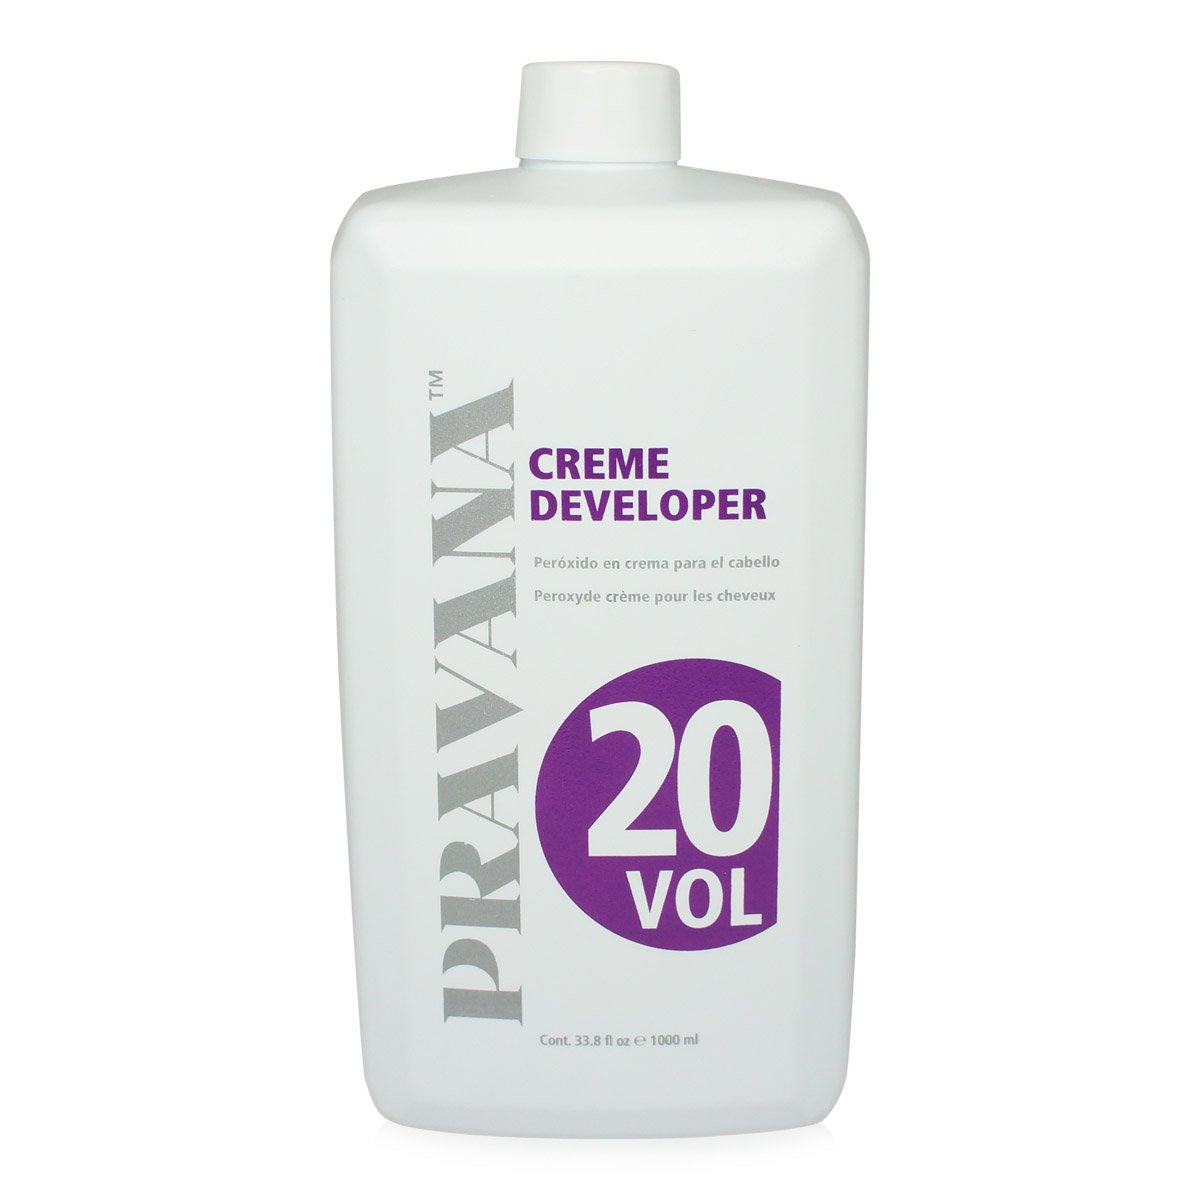 Pravana Creme Developers 20 Volume 33.8 fl oz by Pravana